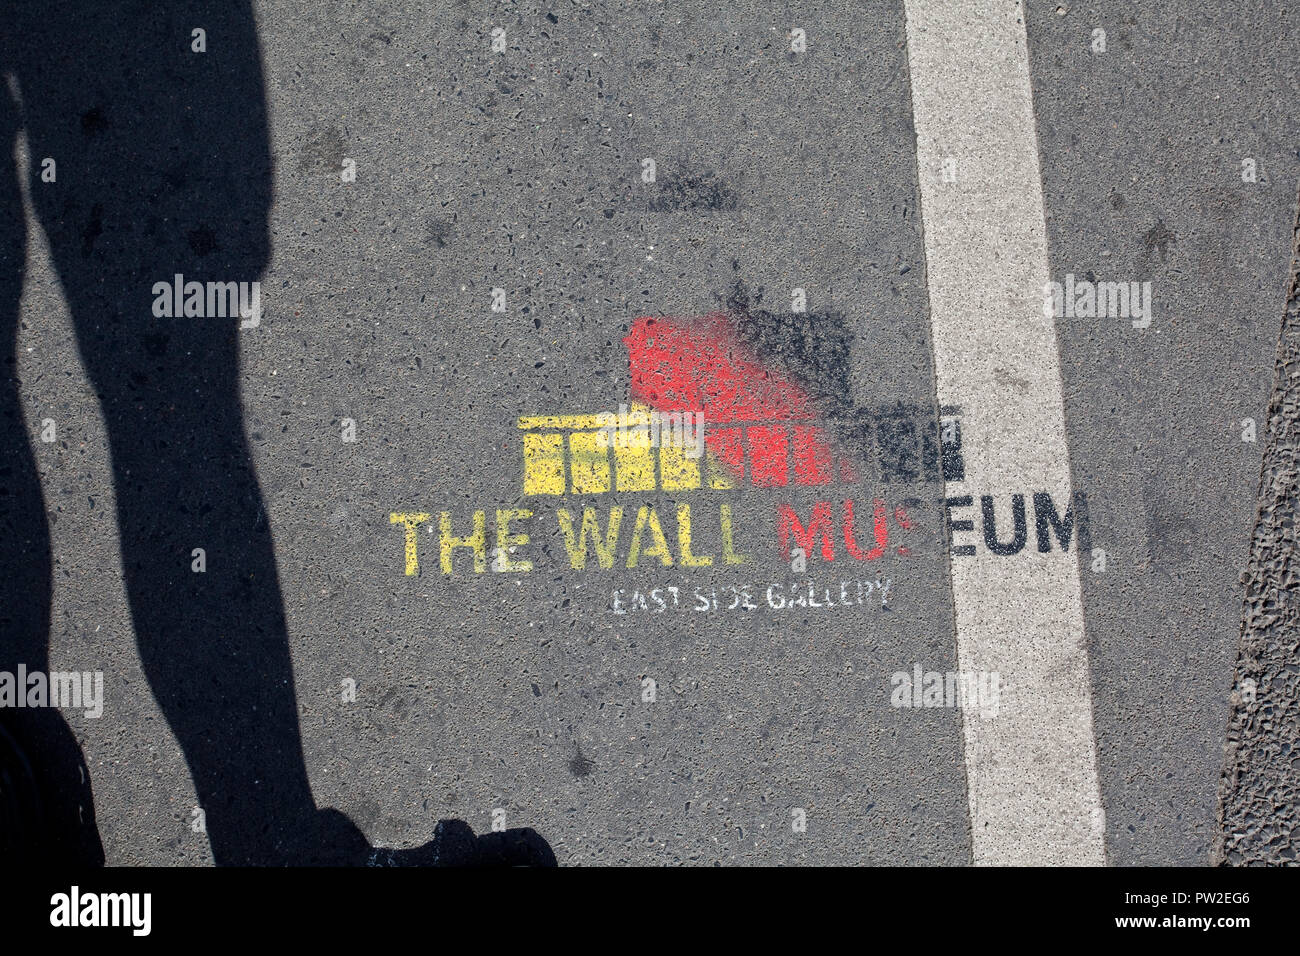 East Side Gallery, The Wall Museum, Berlin - Stock Image